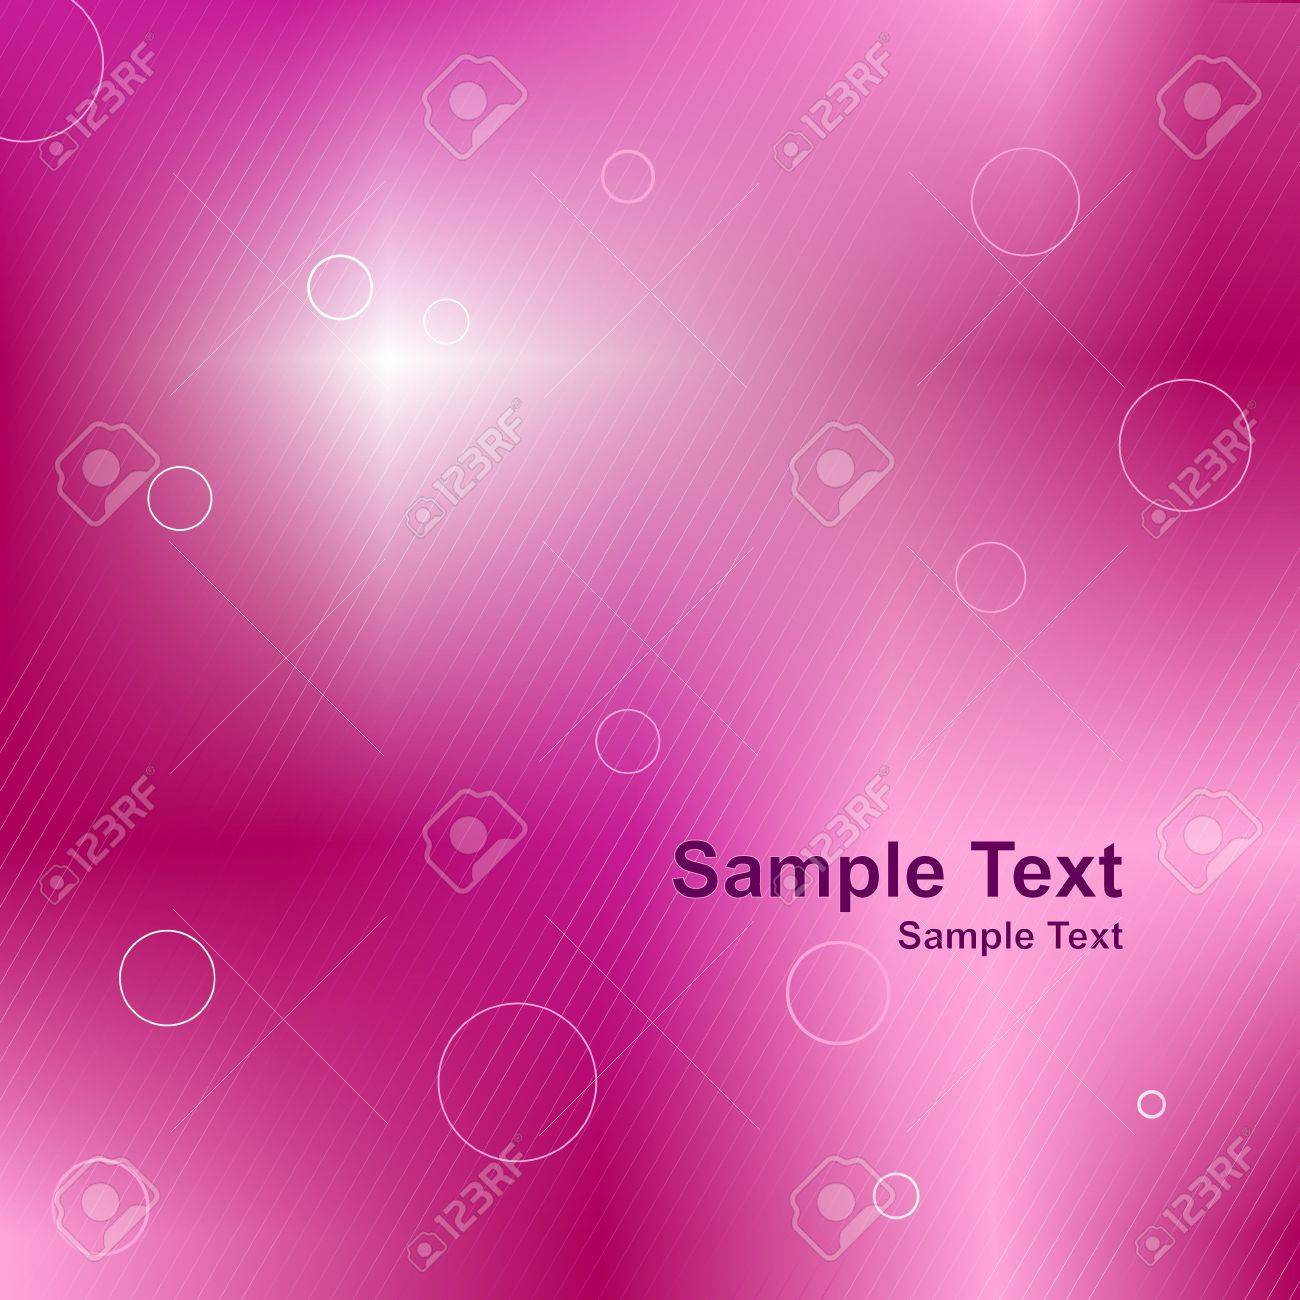 Abstract pink purple fantasy background with copy space use of linear gradients blended into